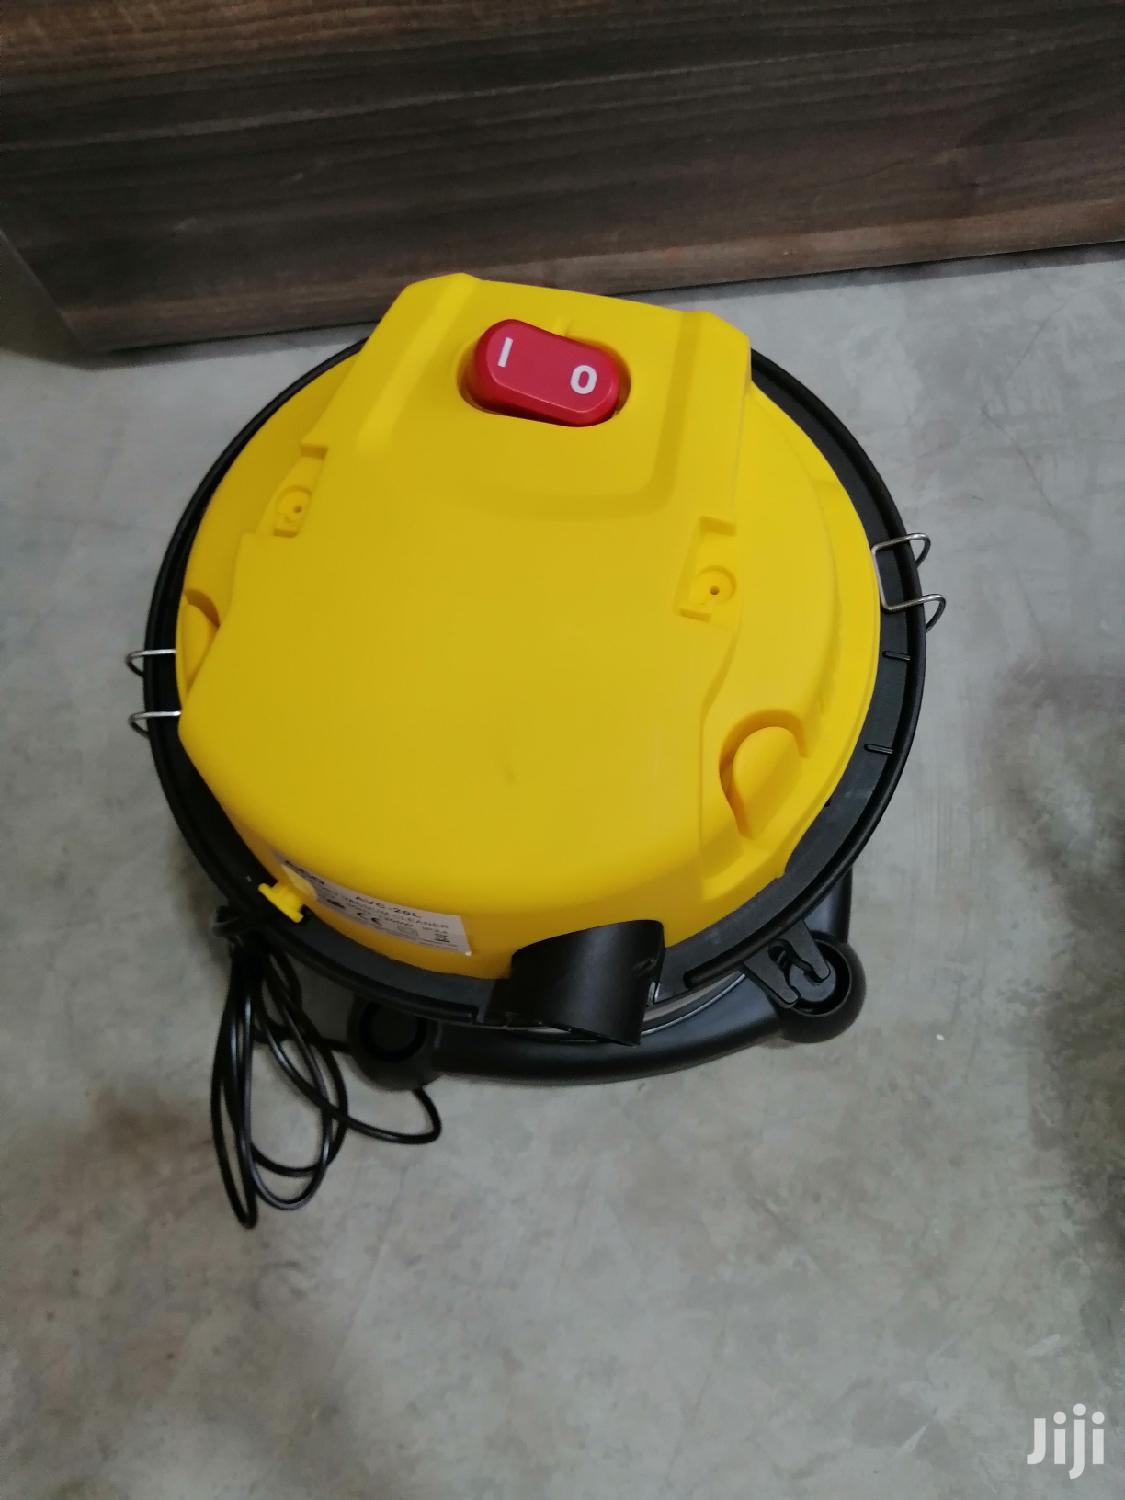 Aico Wet And Dry Vacuum Cleaner 20ltrs | Home Appliances for sale in Nairobi Central, Nairobi, Kenya